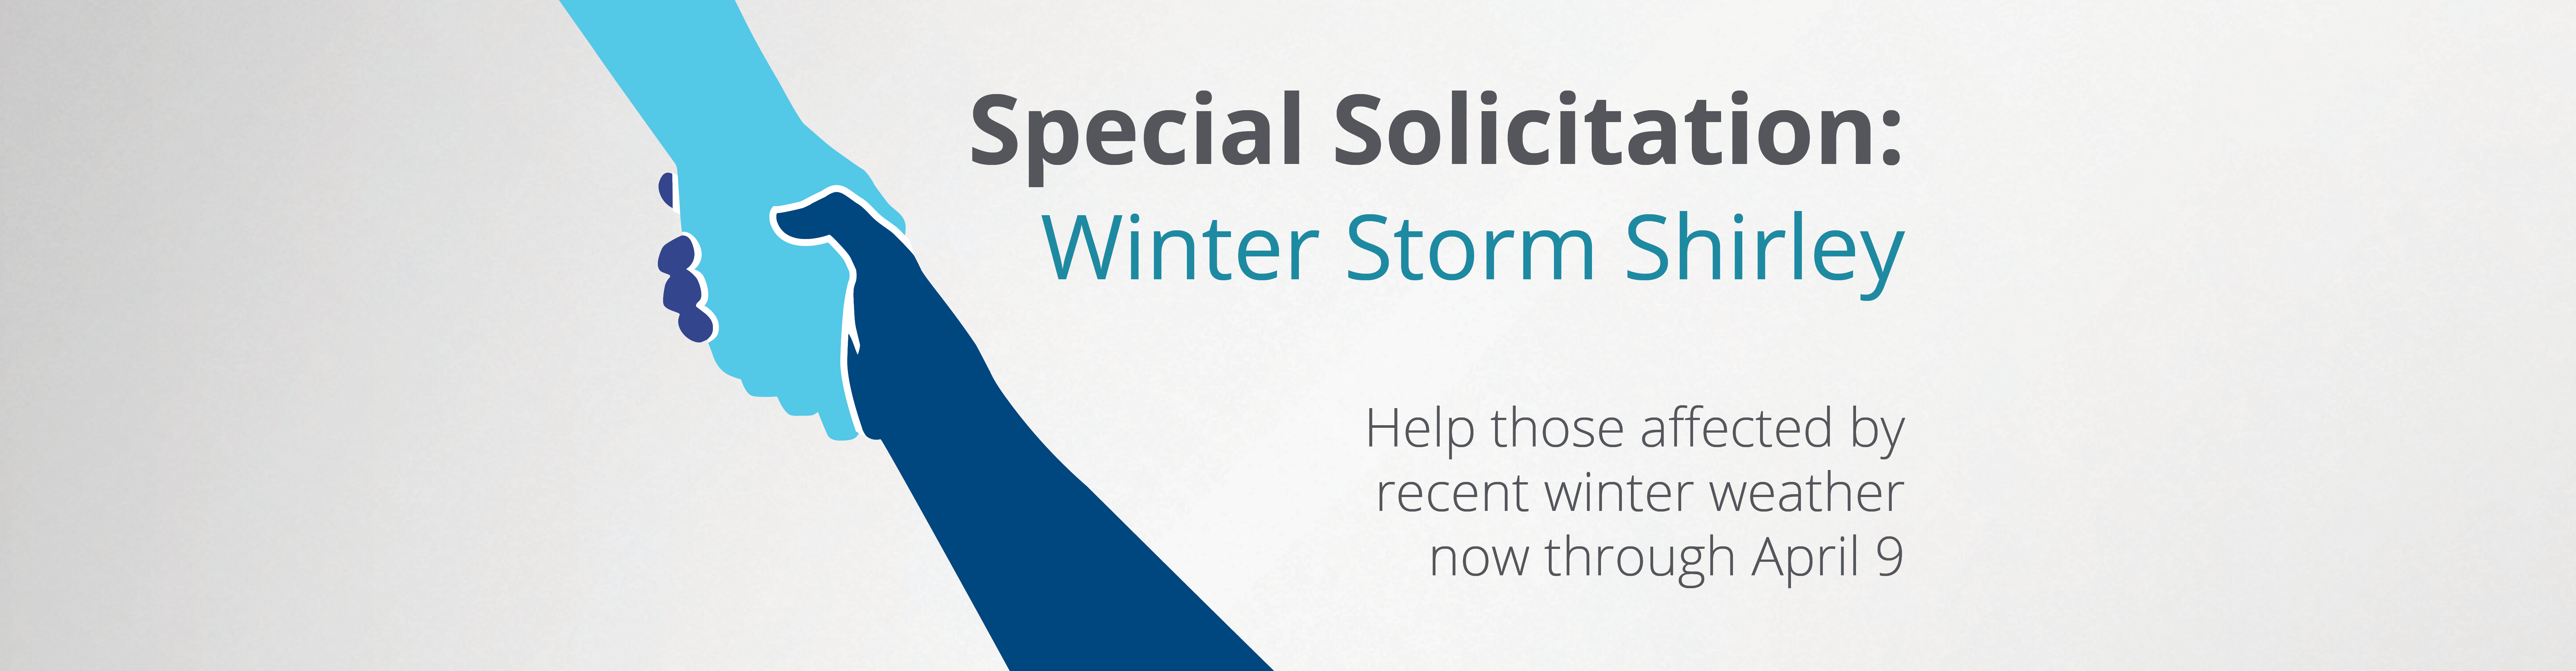 "Banner announcing the Special Solicitation: Winter Storm Shirley ""Help those affected by severe winter weather now through April 9"""